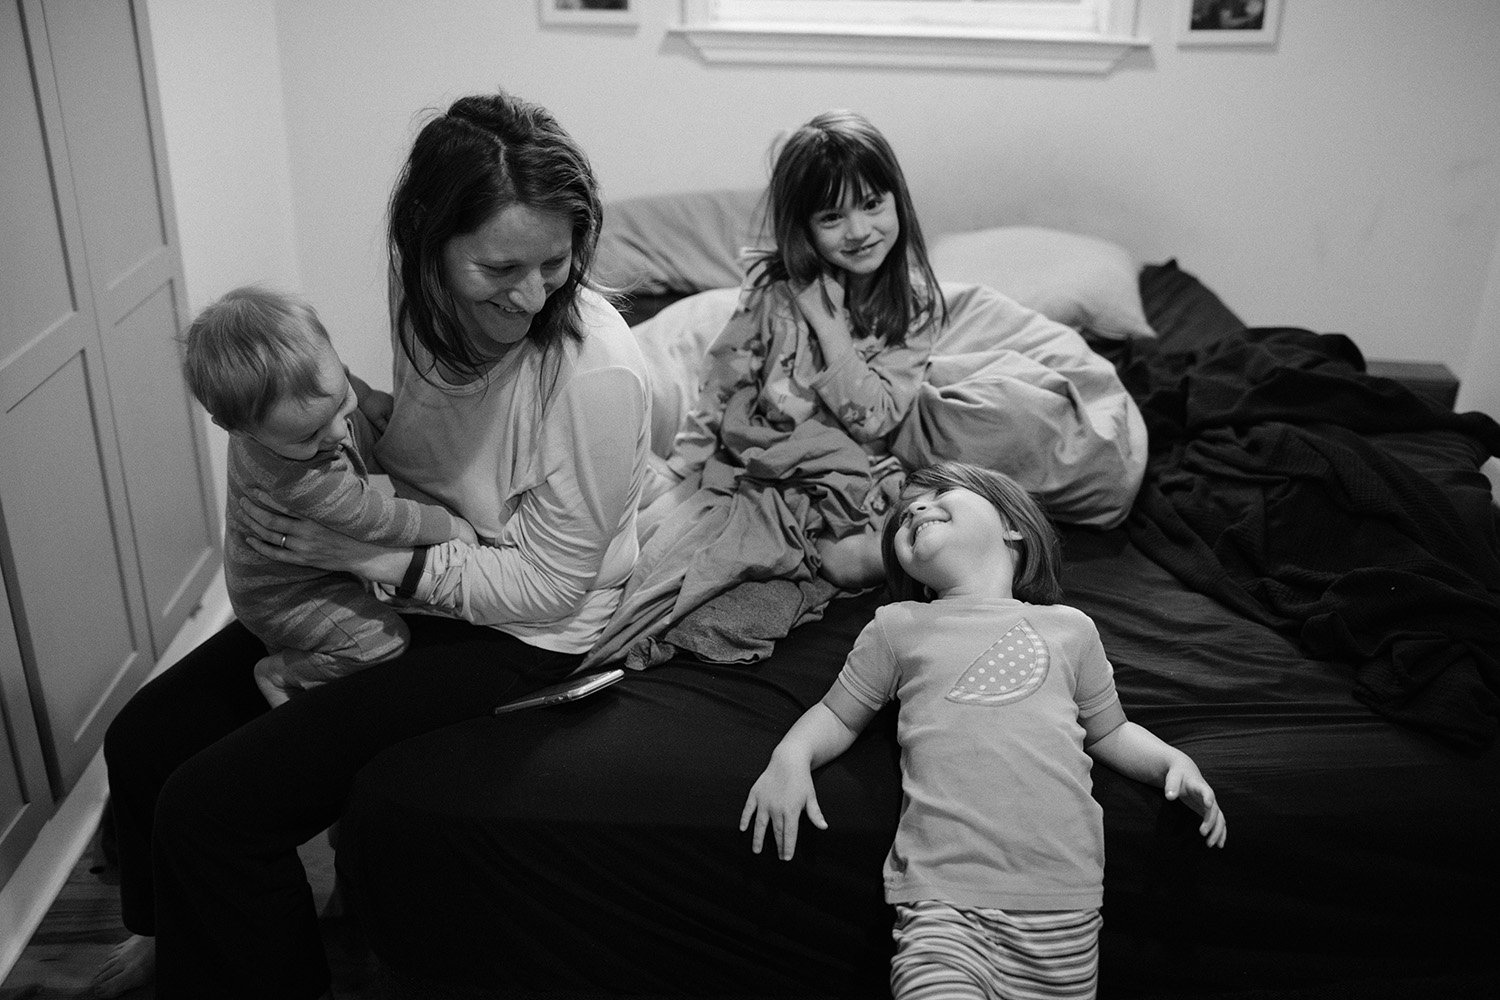 Atlanta Documentary Family Photography 026.jpg